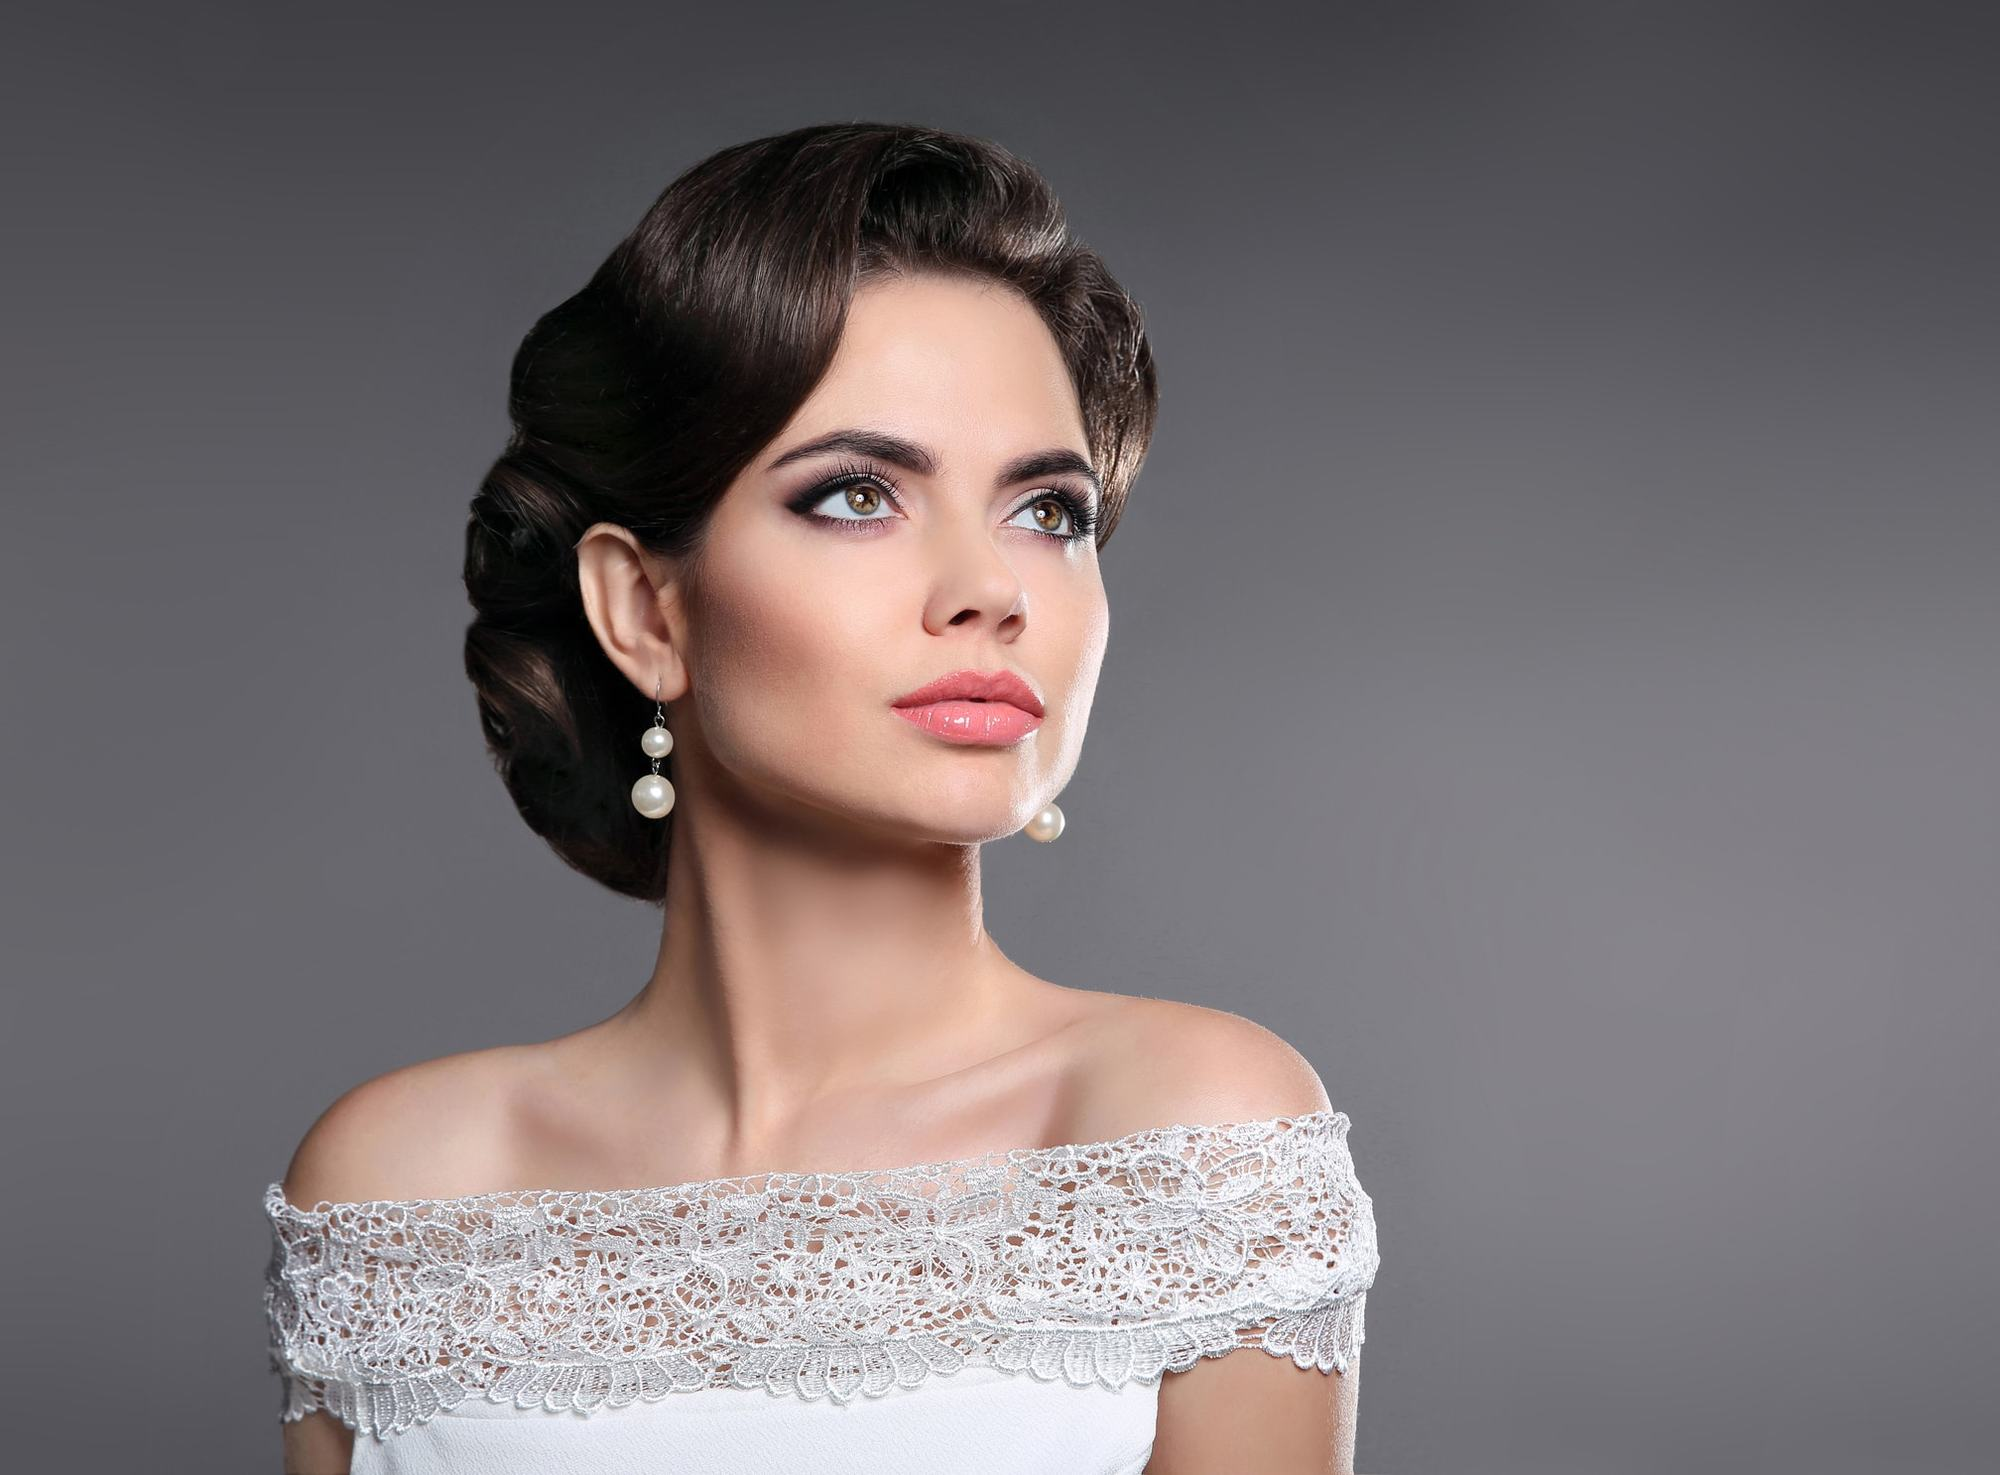 1940s hairstyles simple 1940s hairstyles brunette updo 40s hairstyles look into the fascinating world of vintage hair